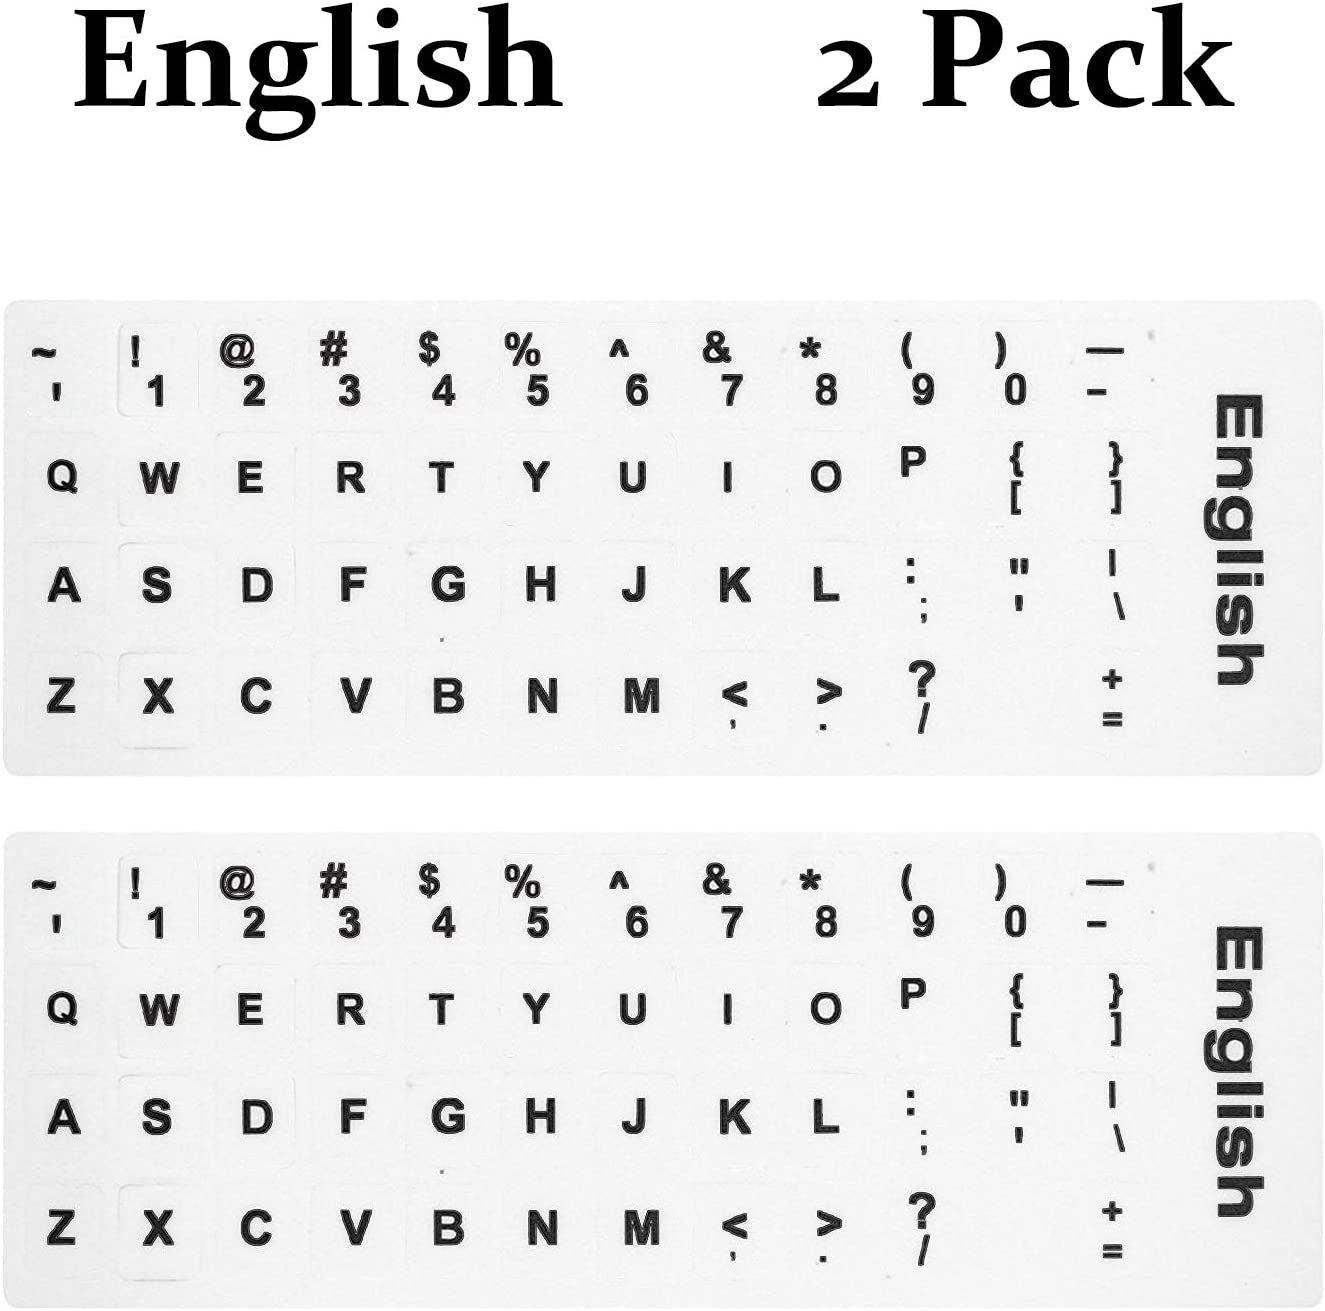 2PCS Pack English Keyboard Stickers English Keyboard Replacement Srickers with White Background and Black LetteringforComputerNotebookLaptopDesktop Keyboards